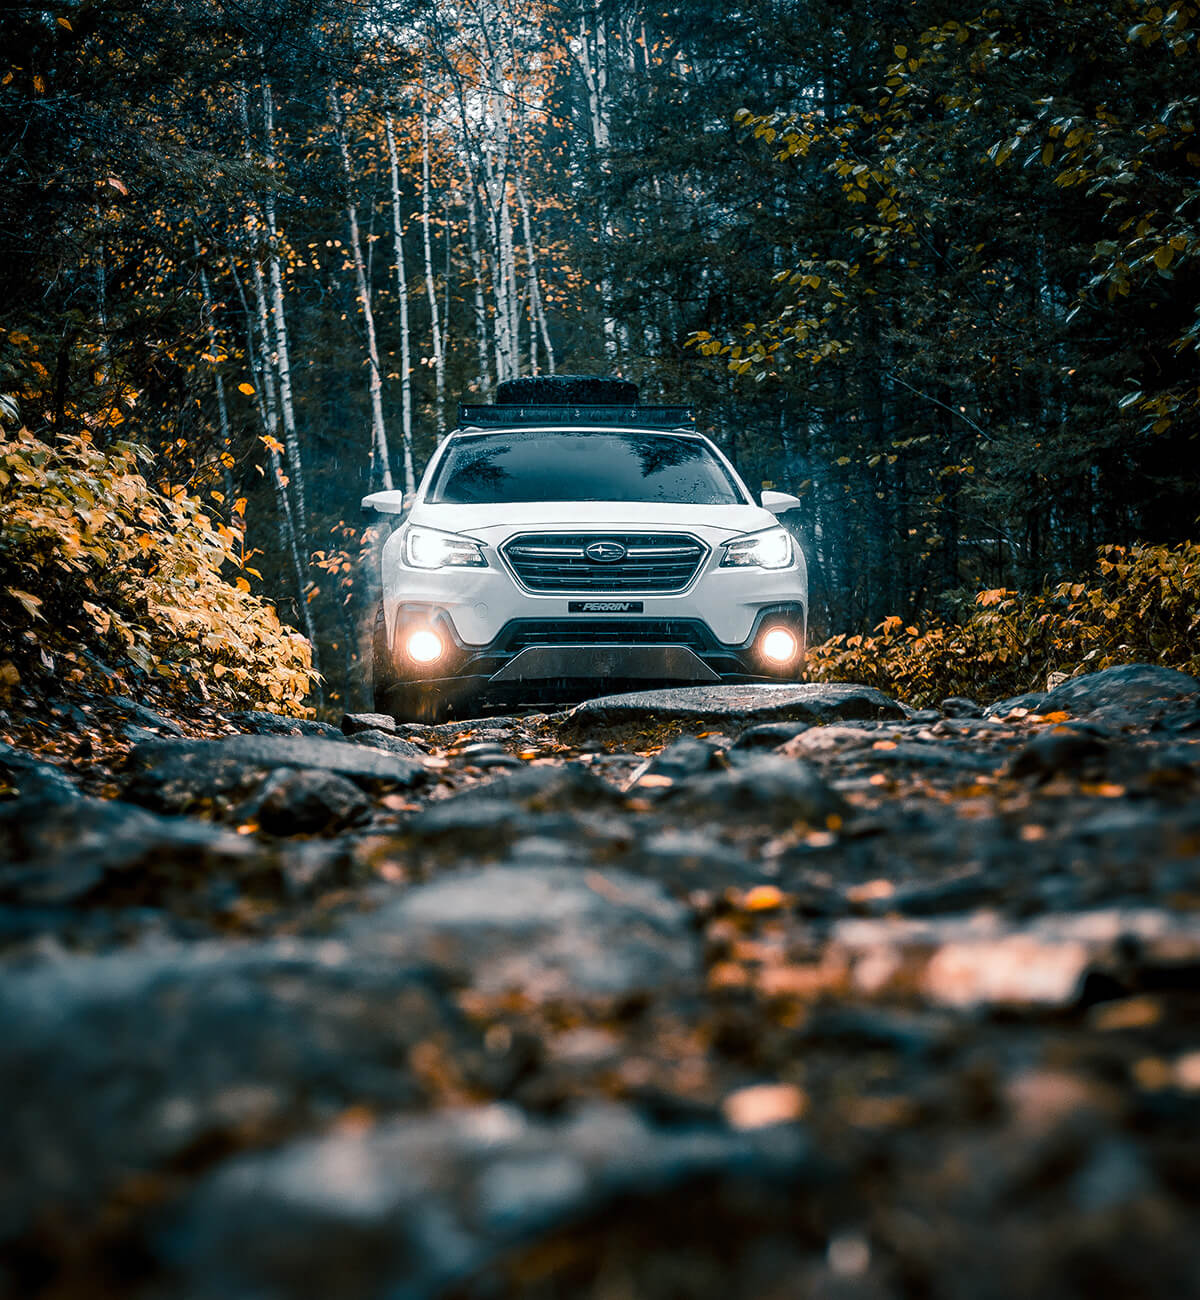 Wite Subaru Outback Offroad Photography